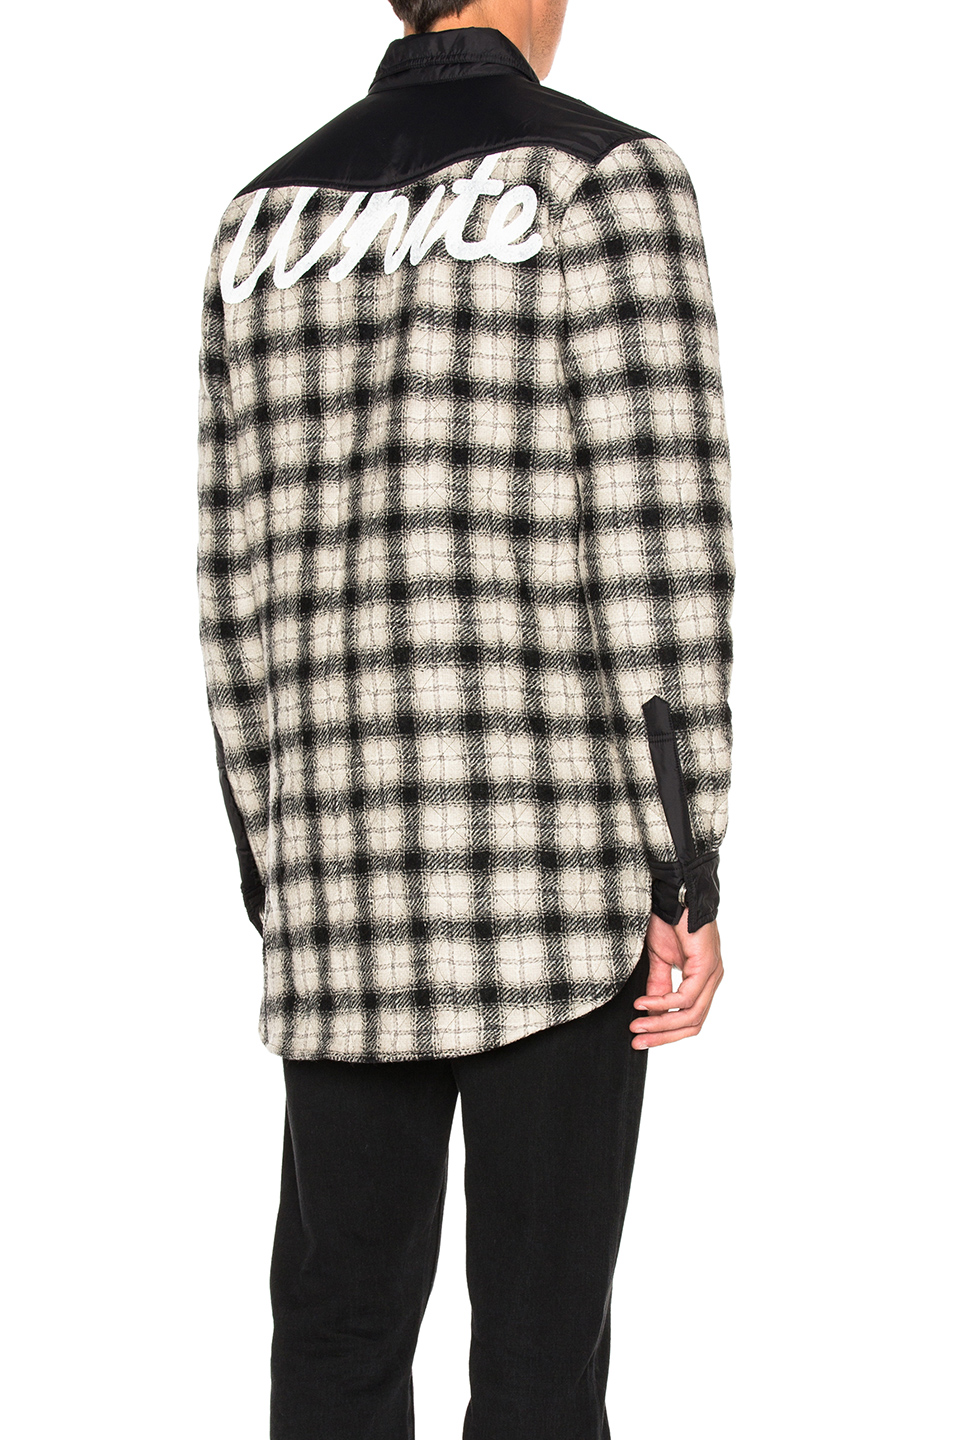 OFF-WHITE Quilted Flannel Button Down in Black,White,Checkered & Plaid